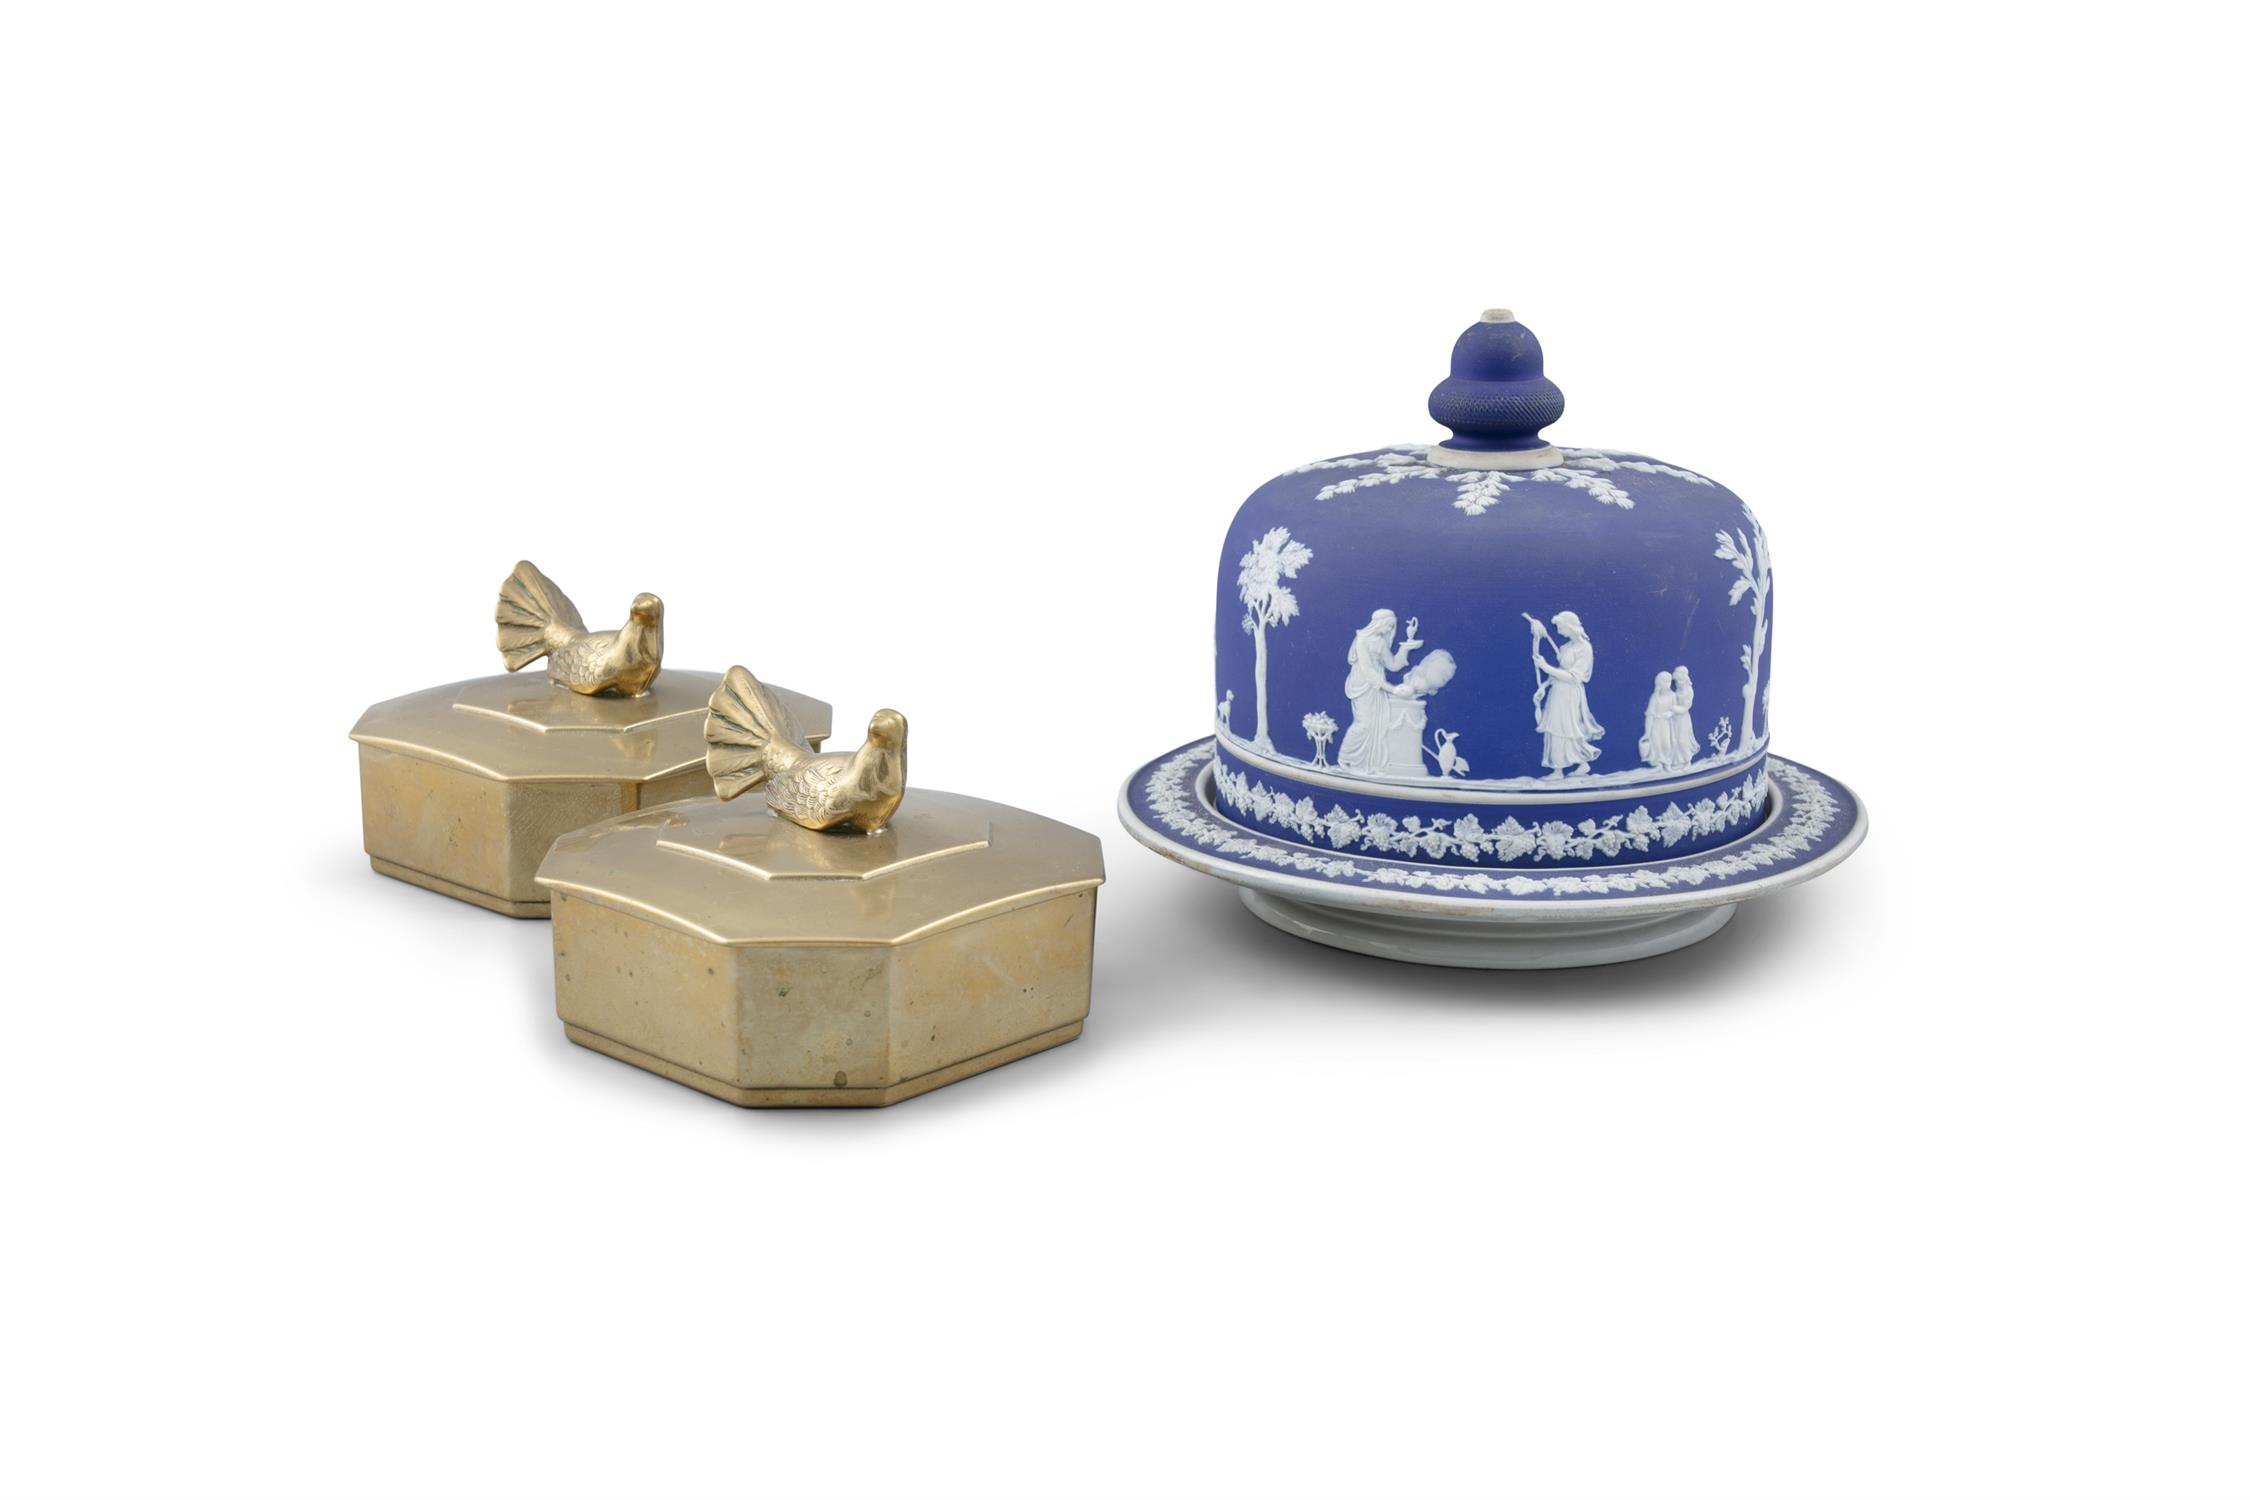 A JASPERWARE CHEESE DISH AND COVER, decorated in white slip with classical figures against a blue